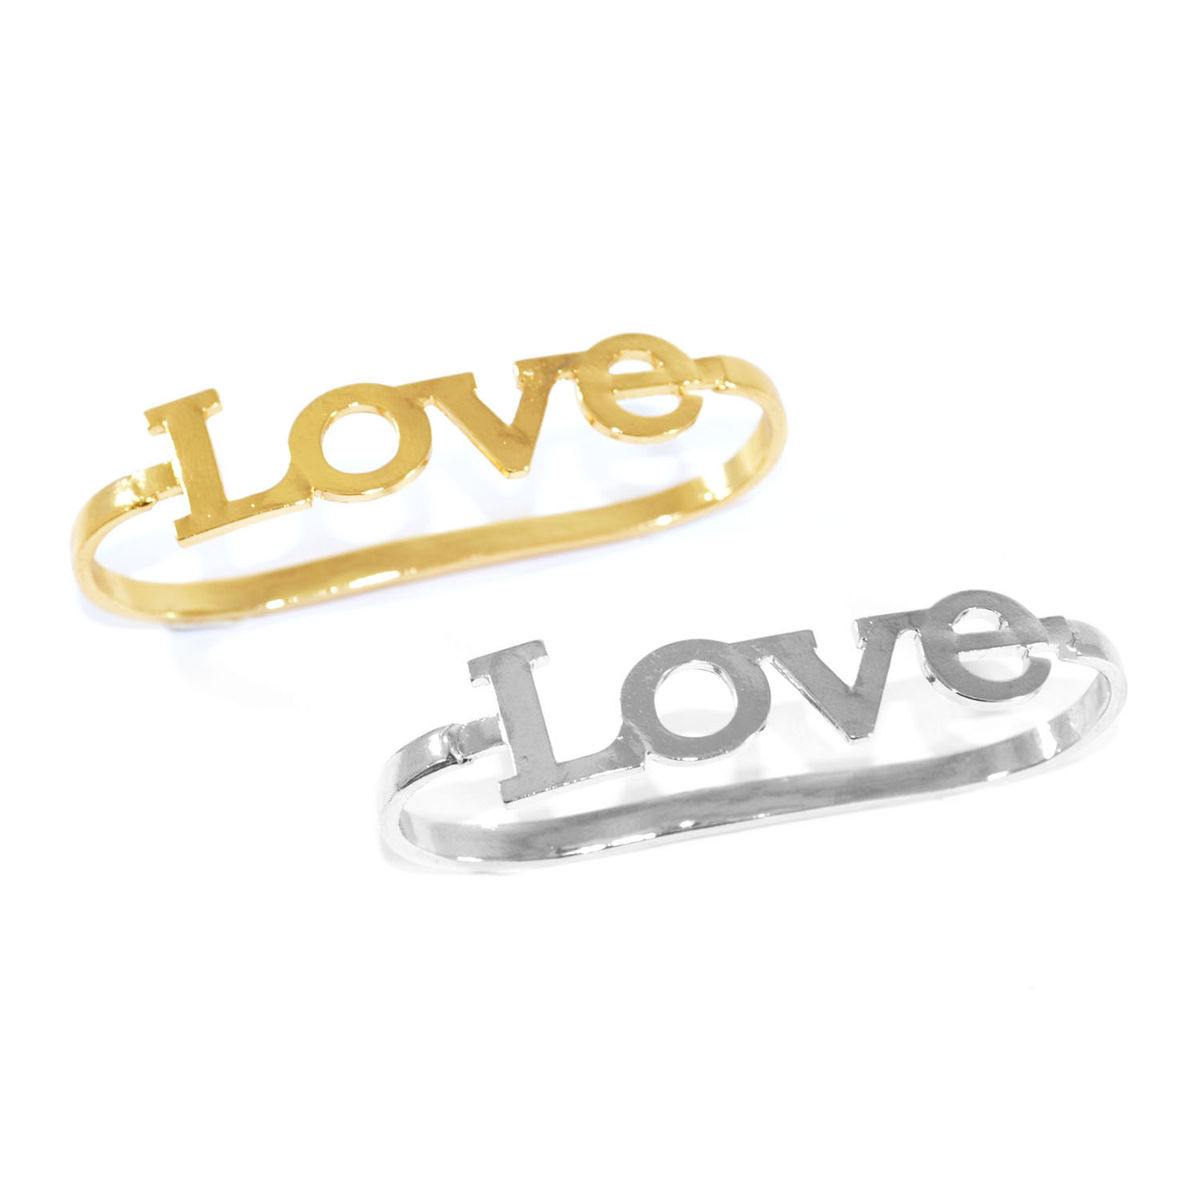 LOVE MESSAGE RING - Rings & Tings | Online fashion store | Shop the latest trends